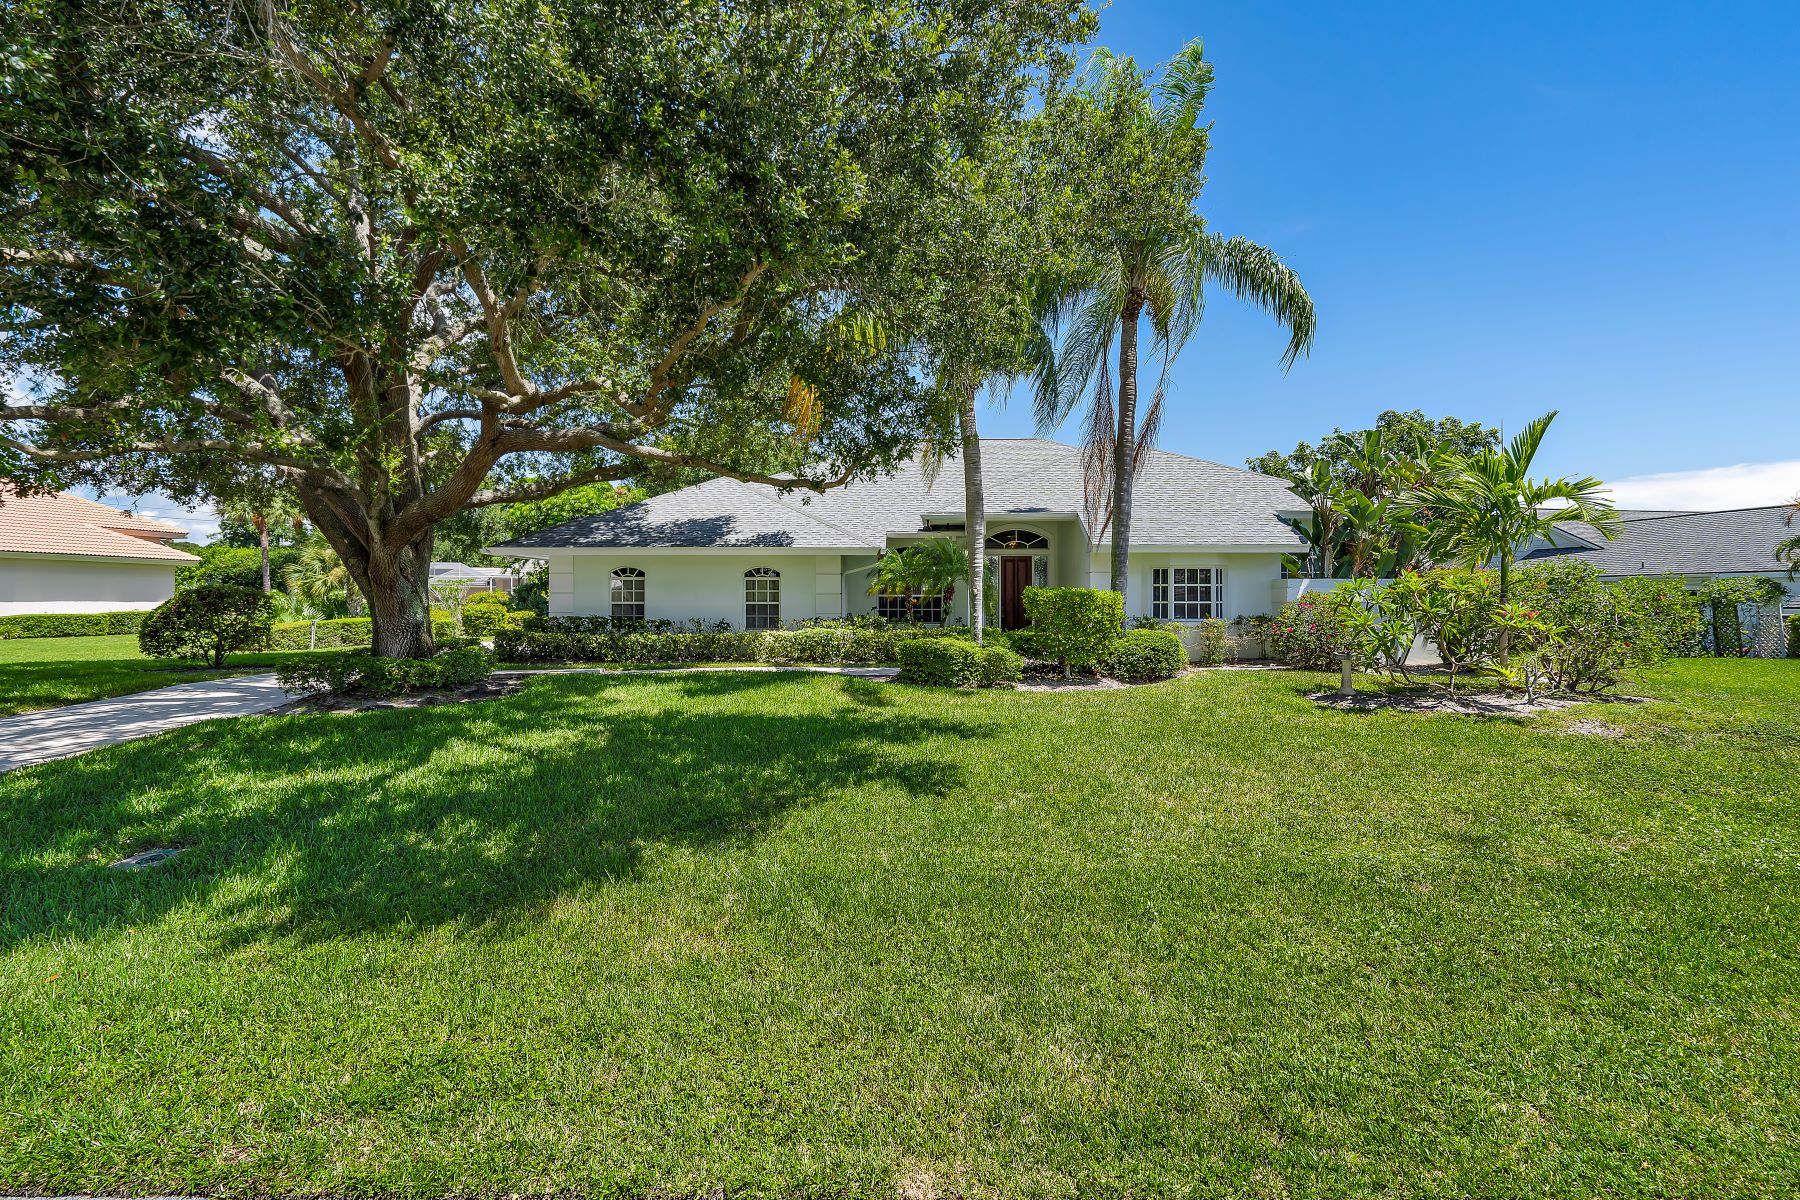 Single Family Homes for Sale at 117 Se Turtle Creek Dr Tequesta, Florida 33469 United States